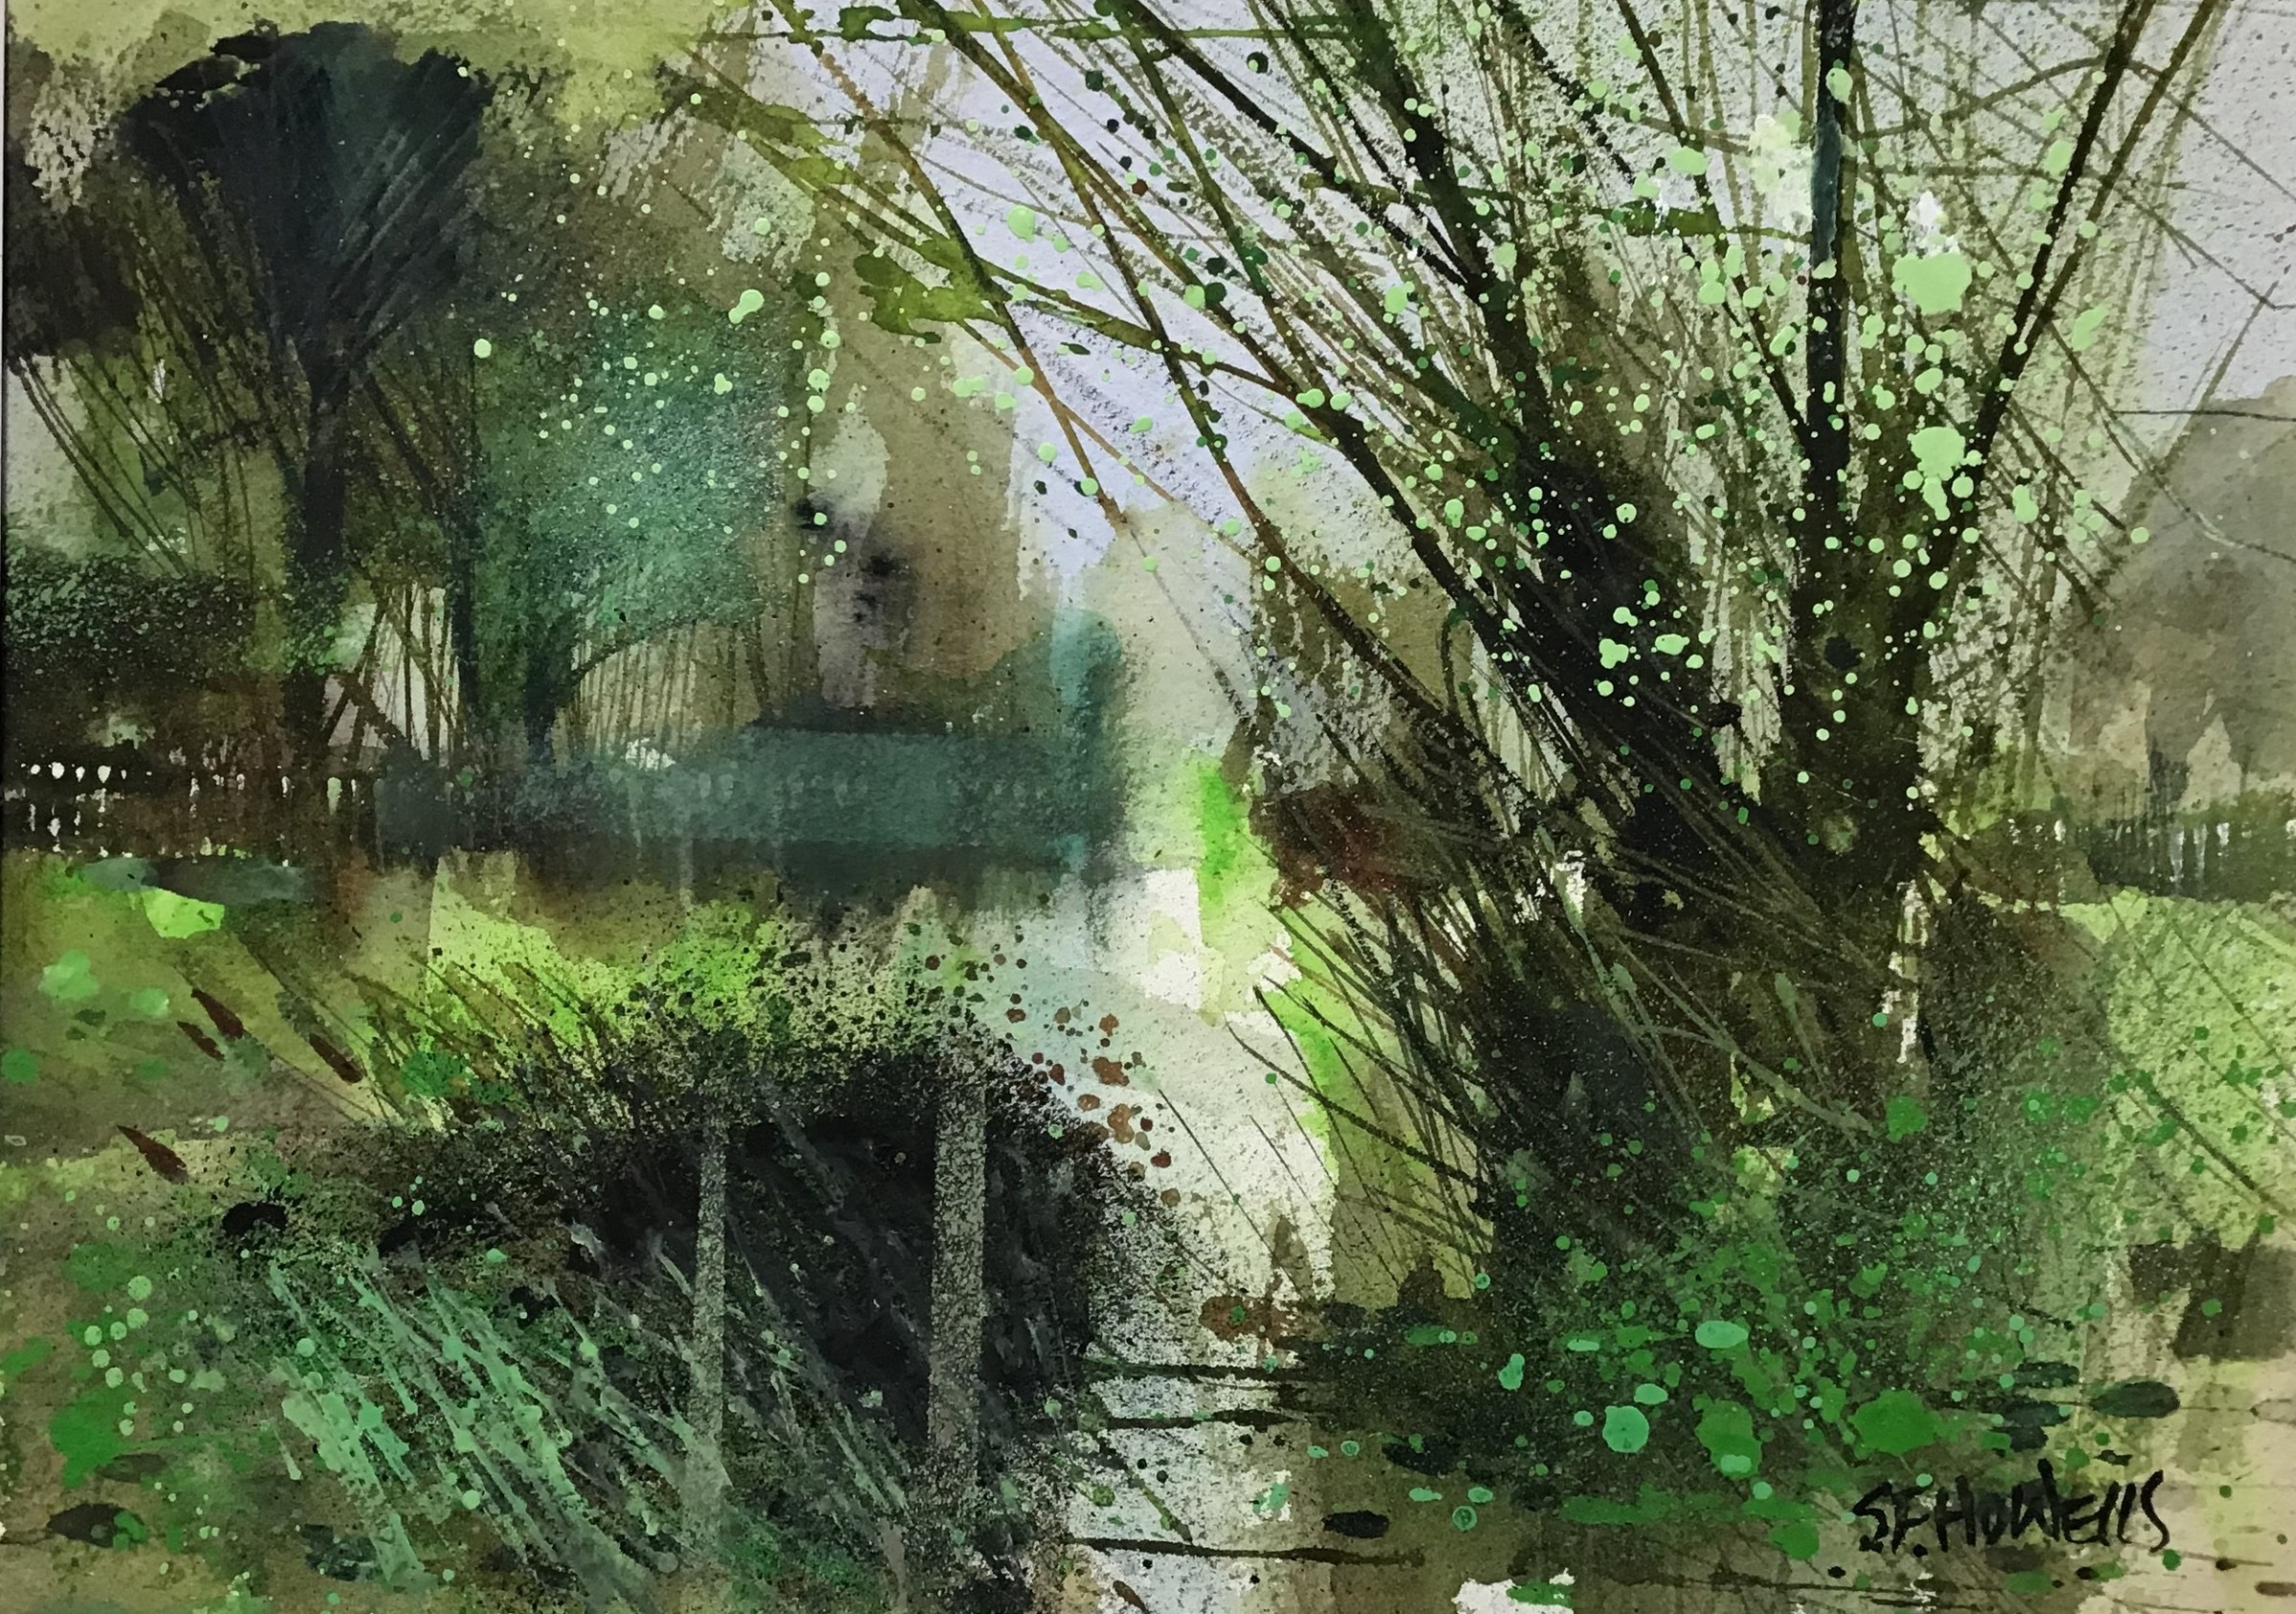 """<span class=""""link fancybox-details-link""""><a href=""""/artists/136-sue-howells/works/12235-sue-howells-banks-of-green-willow/"""">View Detail Page</a></span><div class=""""artist""""><span class=""""artist""""><strong>Sue Howells</strong></span></div><div class=""""title""""><em>Banks of Green Willow</em></div><div class=""""medium"""">watercolour</div><div class=""""dimensions"""">Frame: 42 x 32 cm<br /> Artwork: 24 x 34 cm</div><div class=""""price"""">£400.00</div>"""